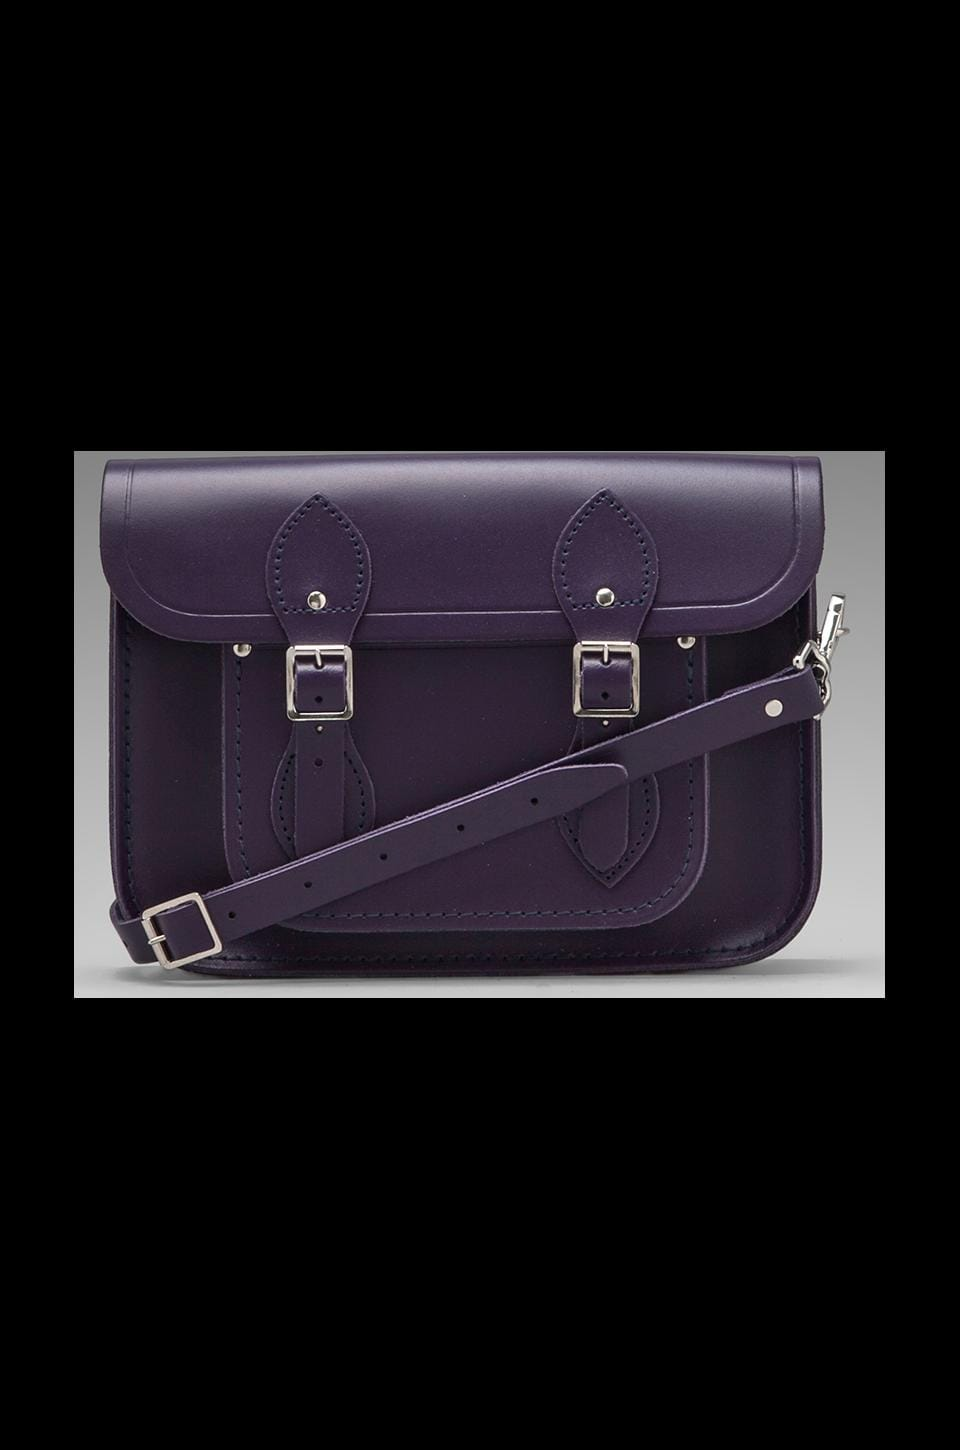 The Cambridge Satchel Company Detachable Short/Long Strap Satchel 11